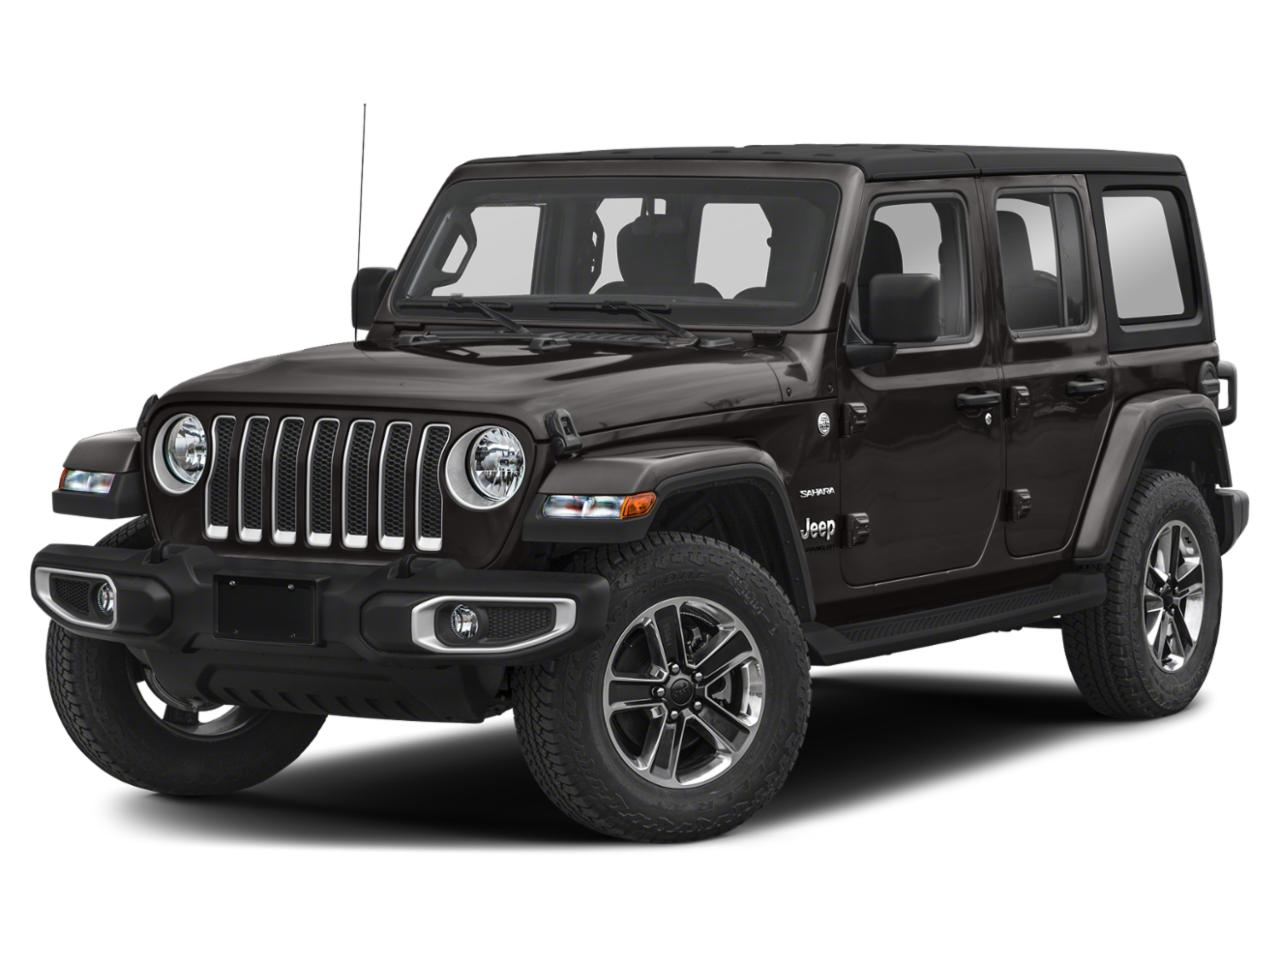 2018 Jeep Wrangler Unlimited Vehicle Photo in Corpus Christi, TX 78411